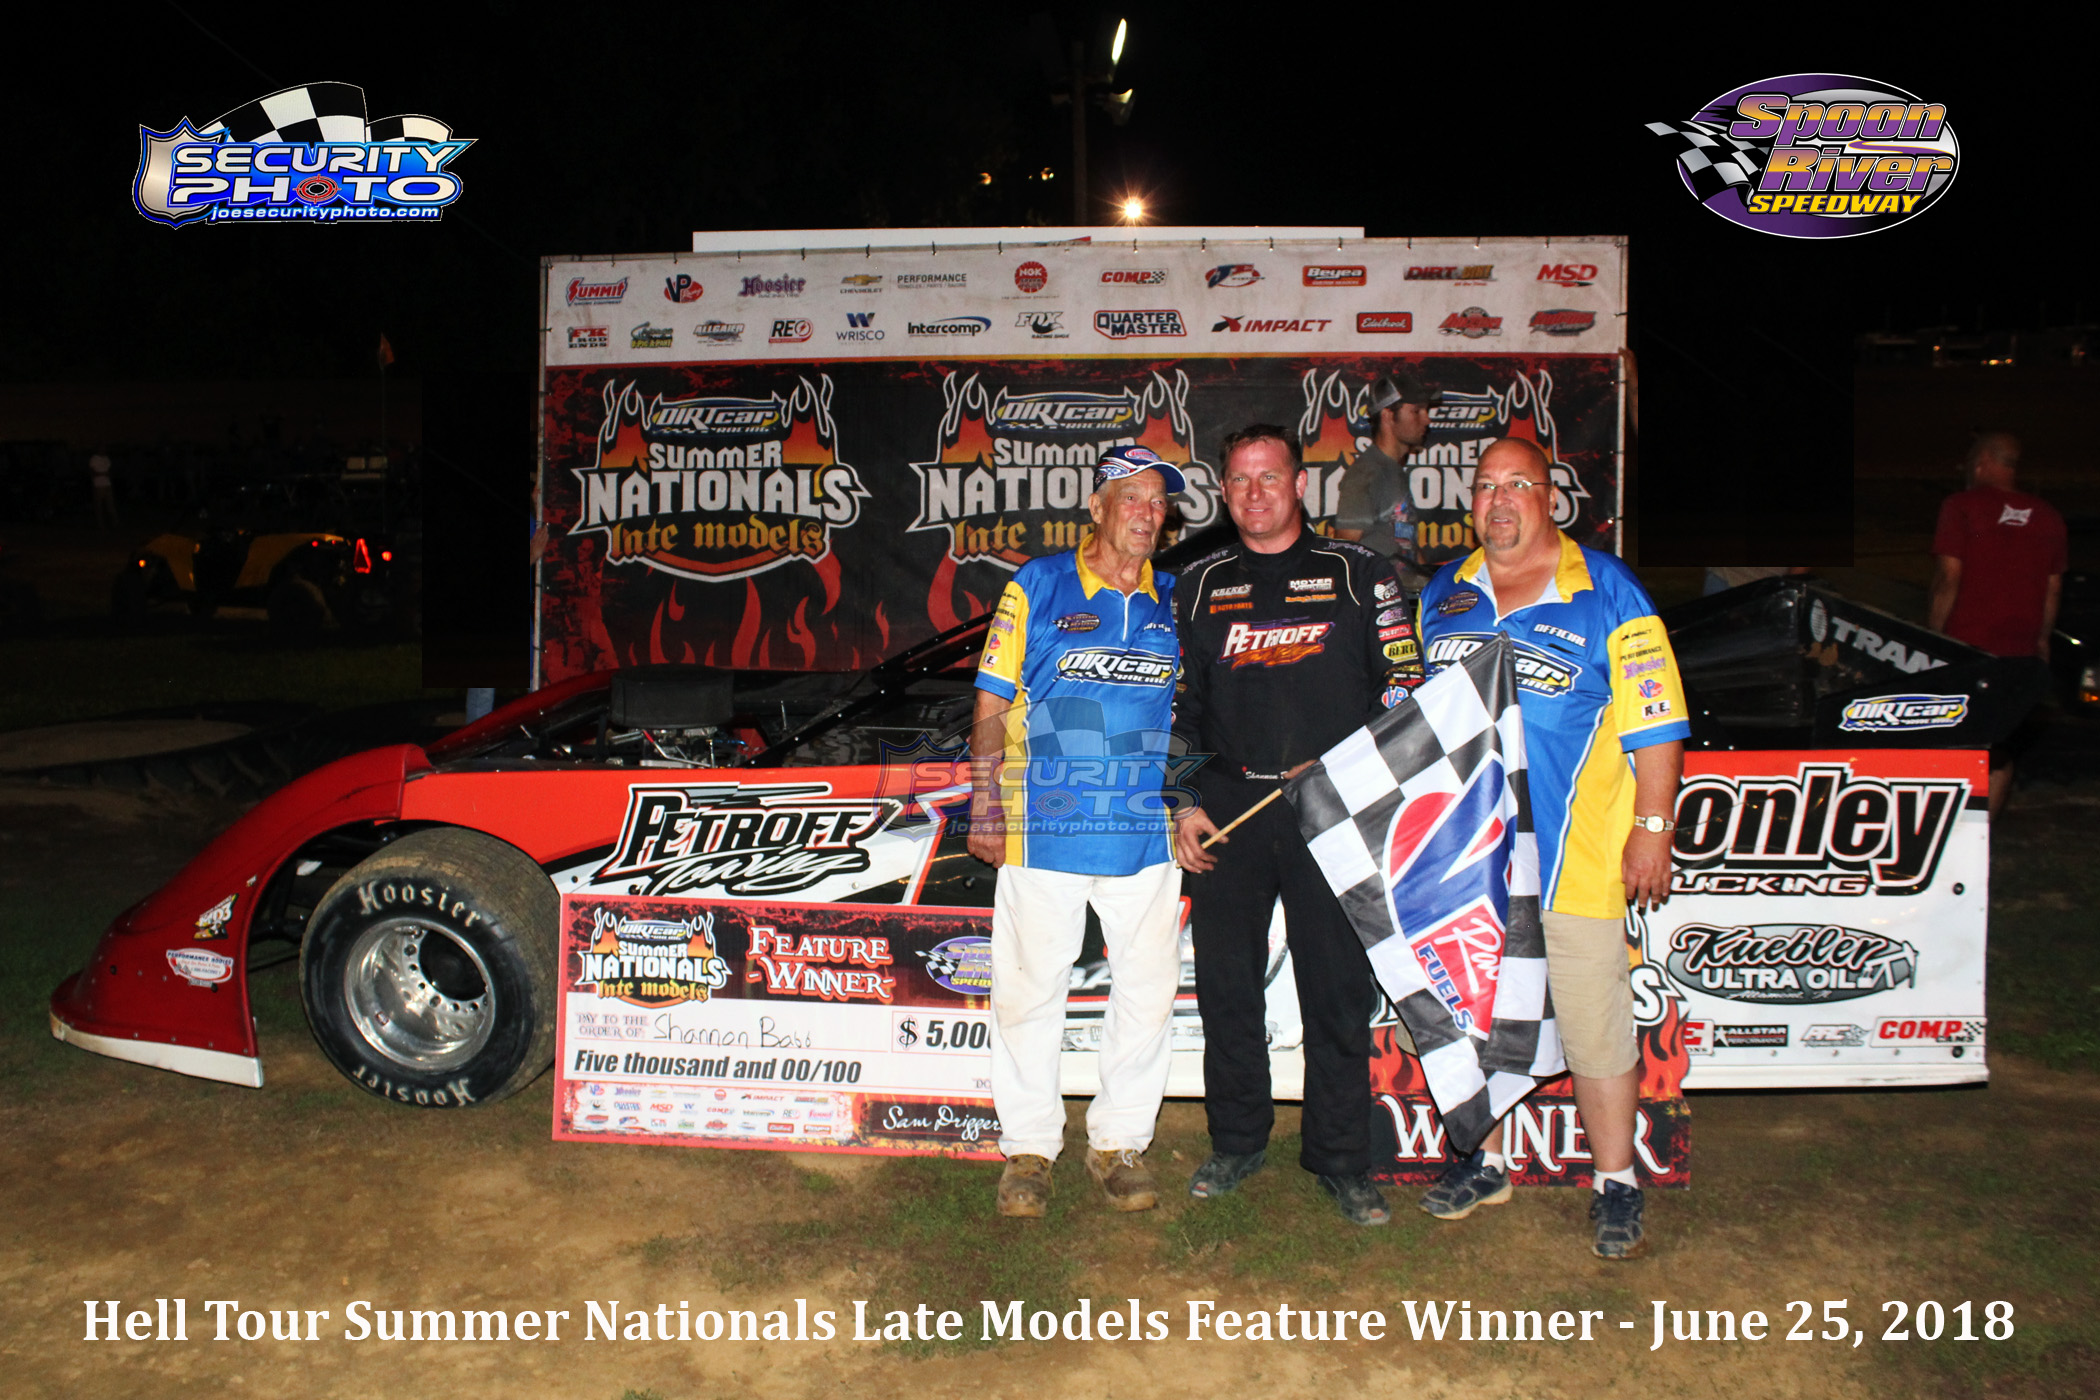 slm feature winner SN Babb